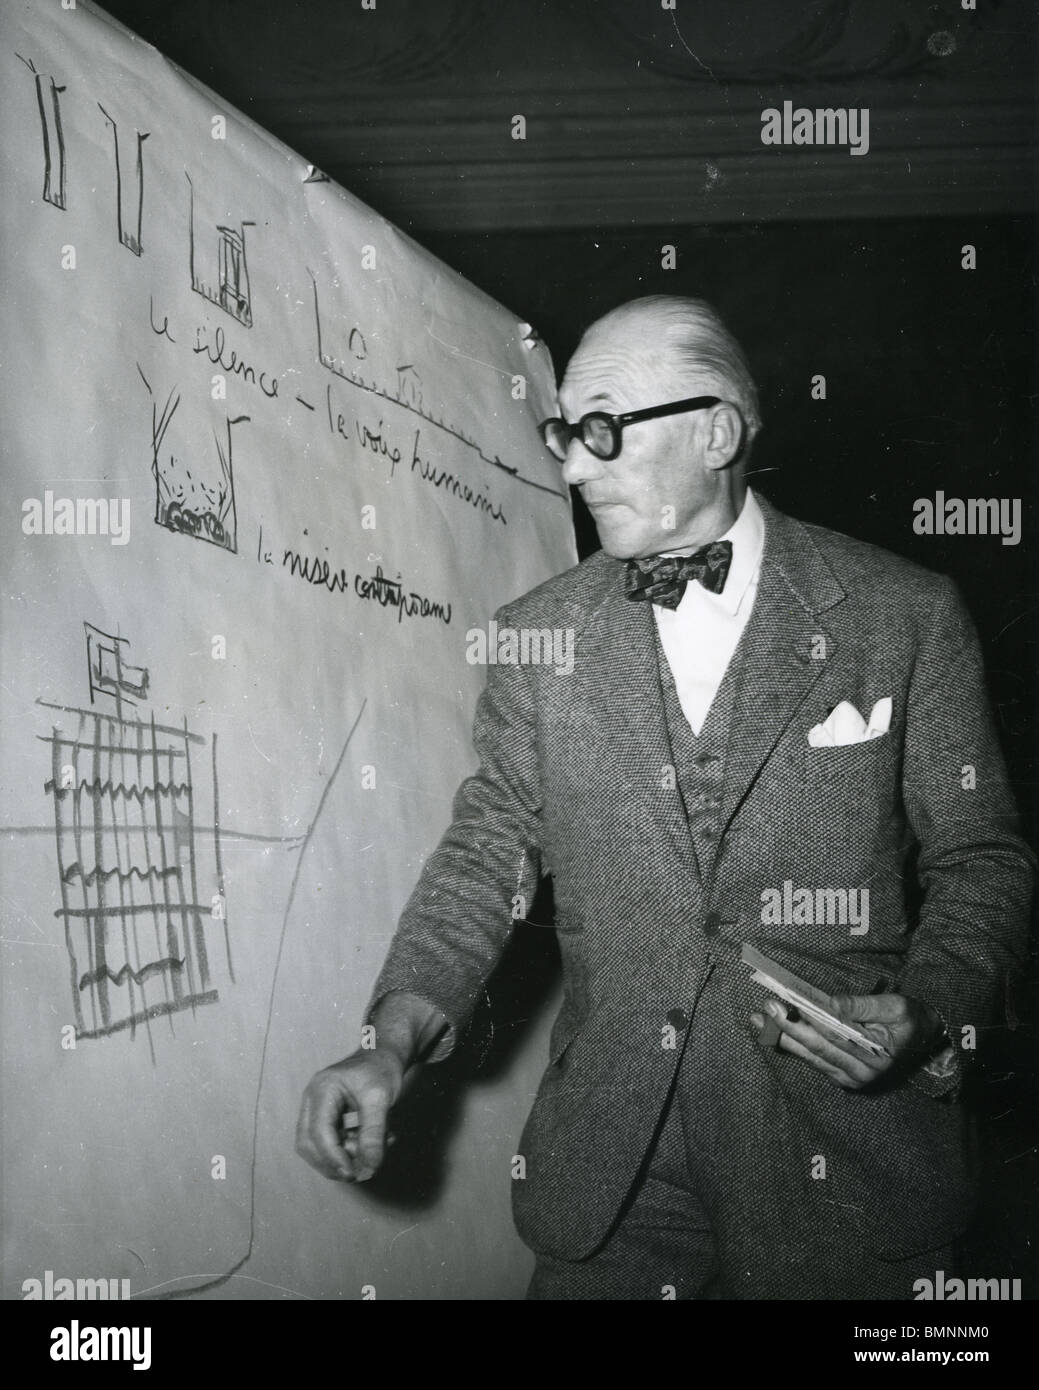 French Architect le corbusier - swiss-french architect giving a talk in venice on